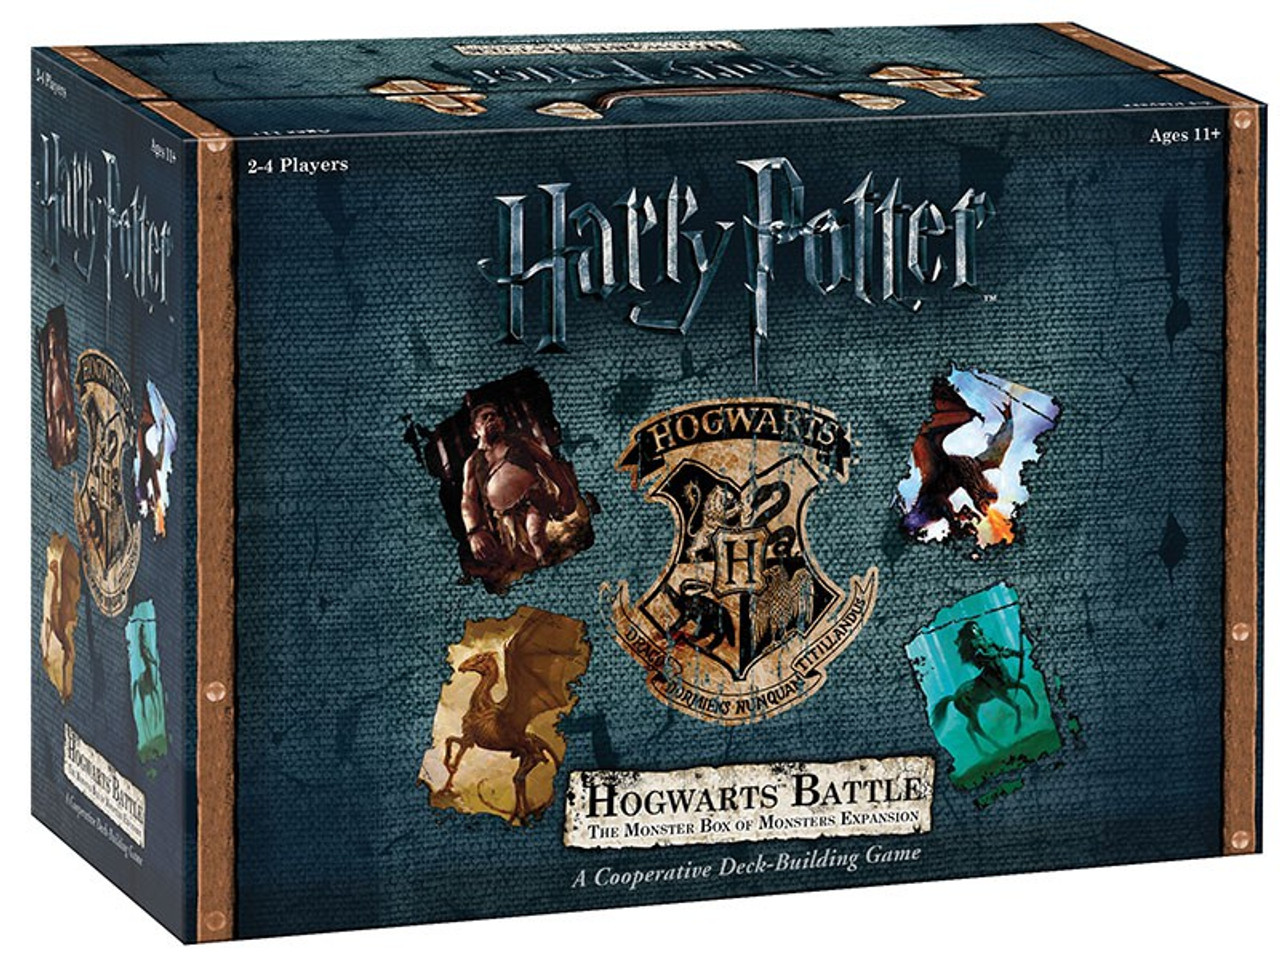 Harry Potter Hogwarts Battle The Monsters Box Of Monsters